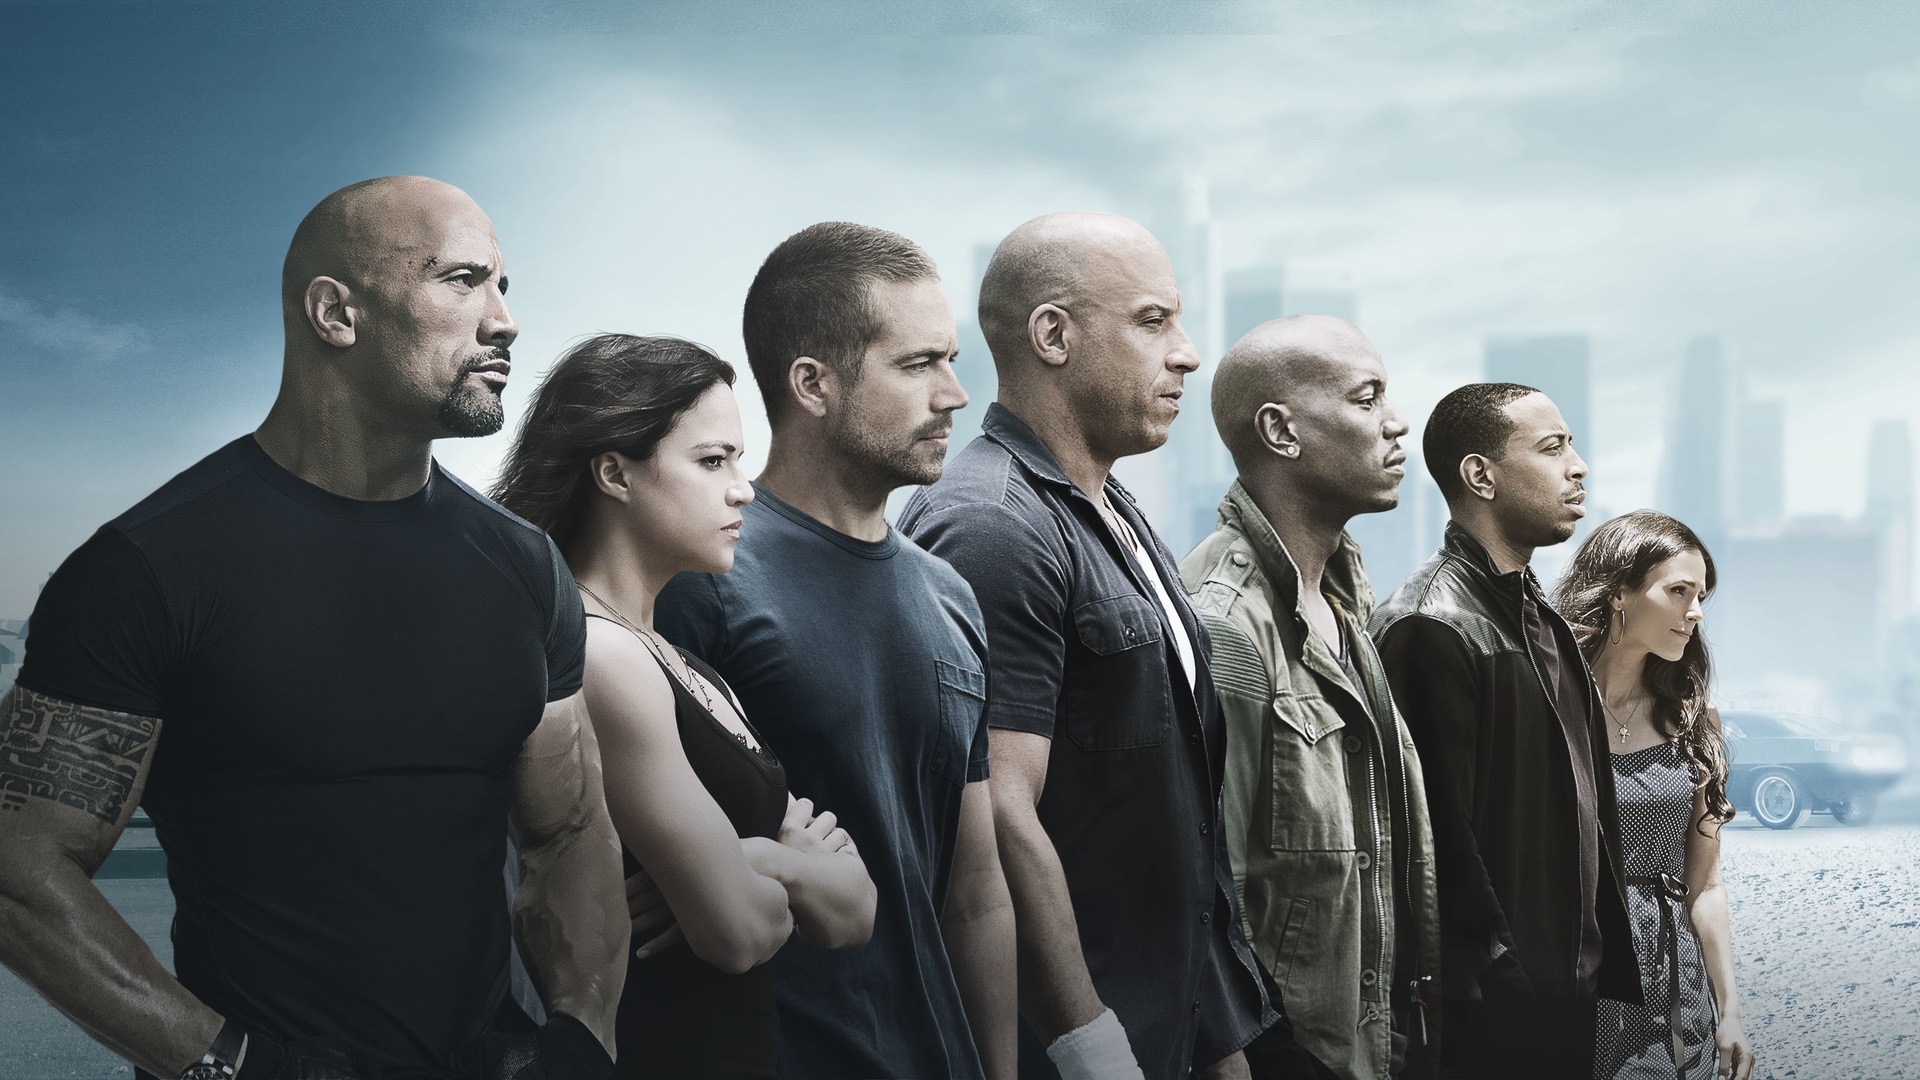 Wallpaper Fast And Furious 7 Hd 1920x1080 Full Hd 2k Picture Image